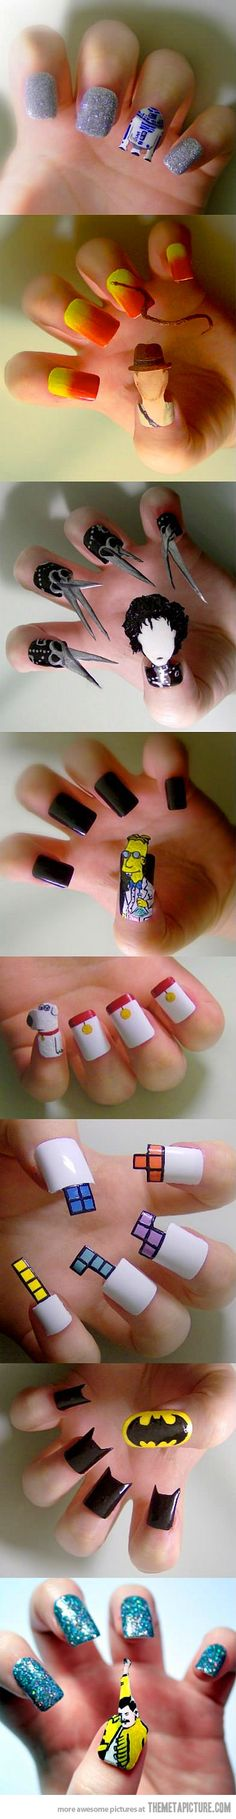 Awesome nail art - possibly the only thing that would ever convince me to keep nail polish on!